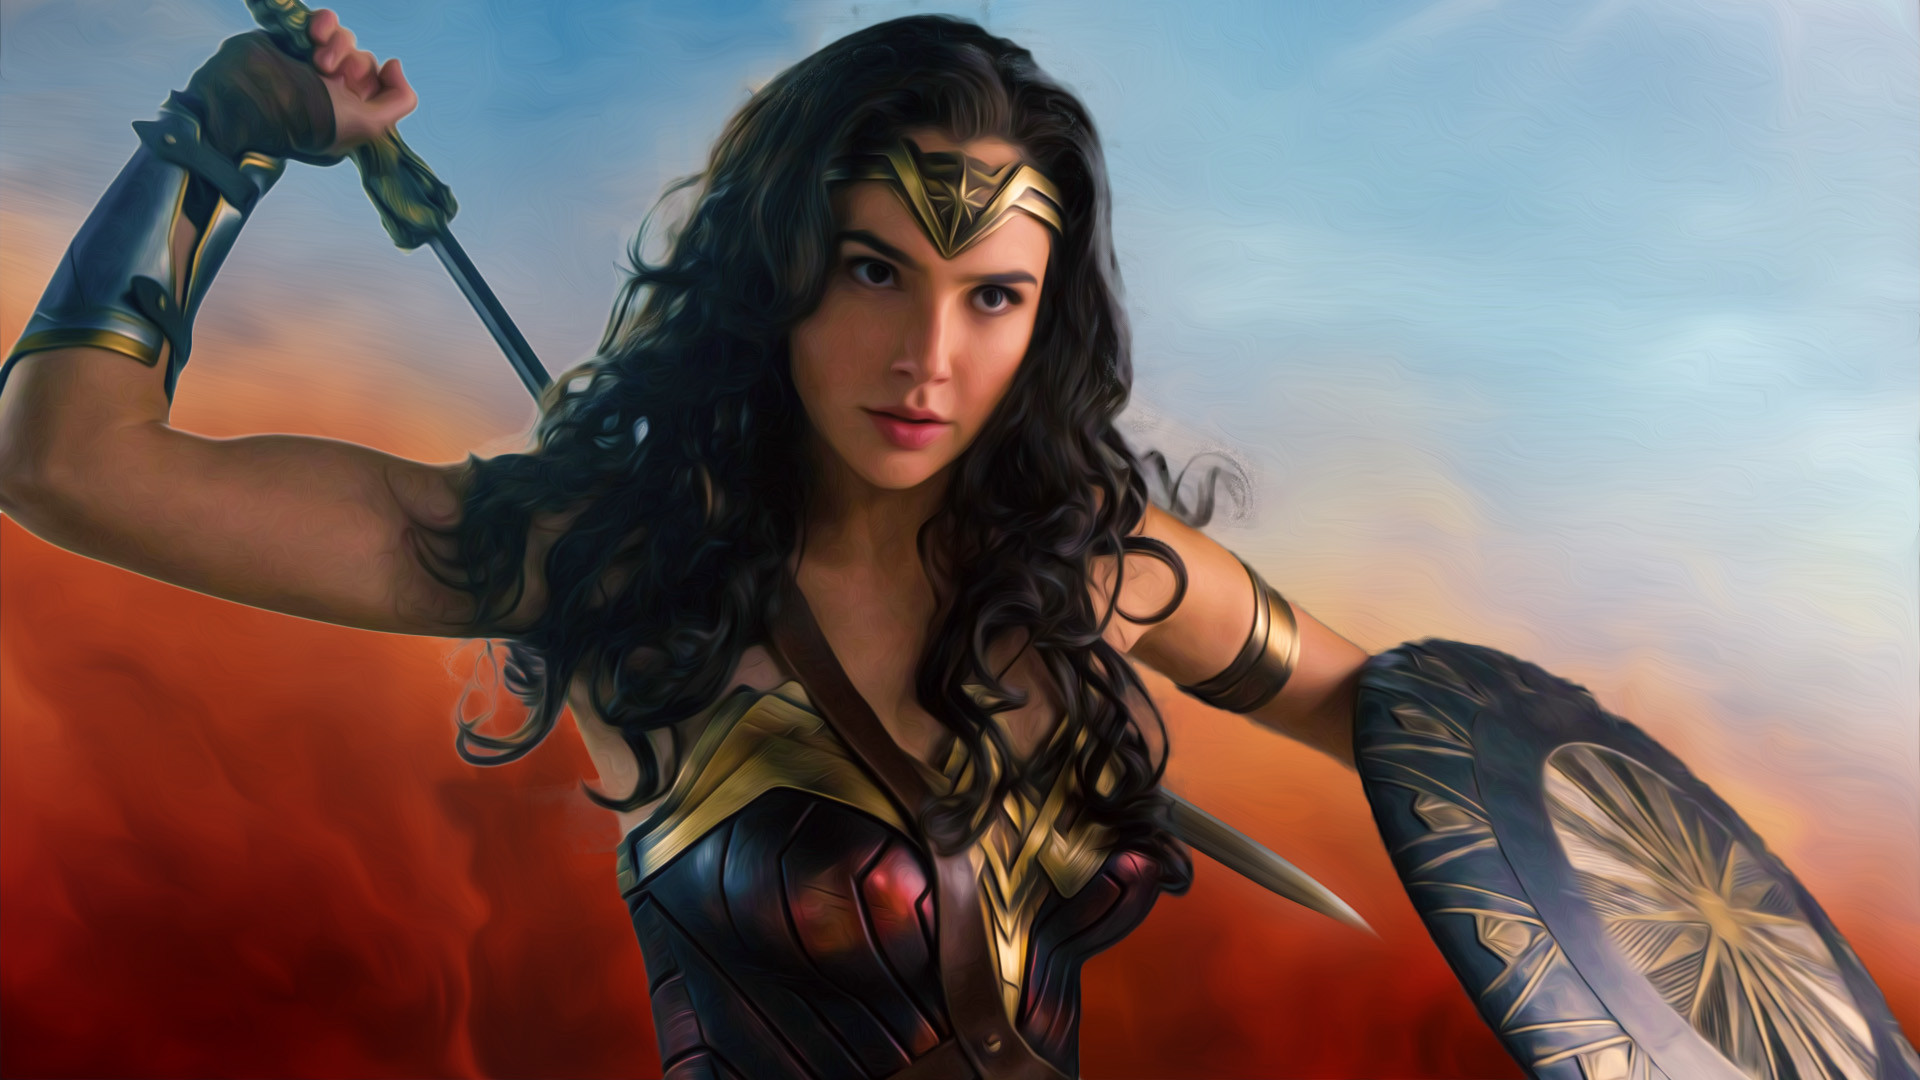 Hd Filme Wonder Woman